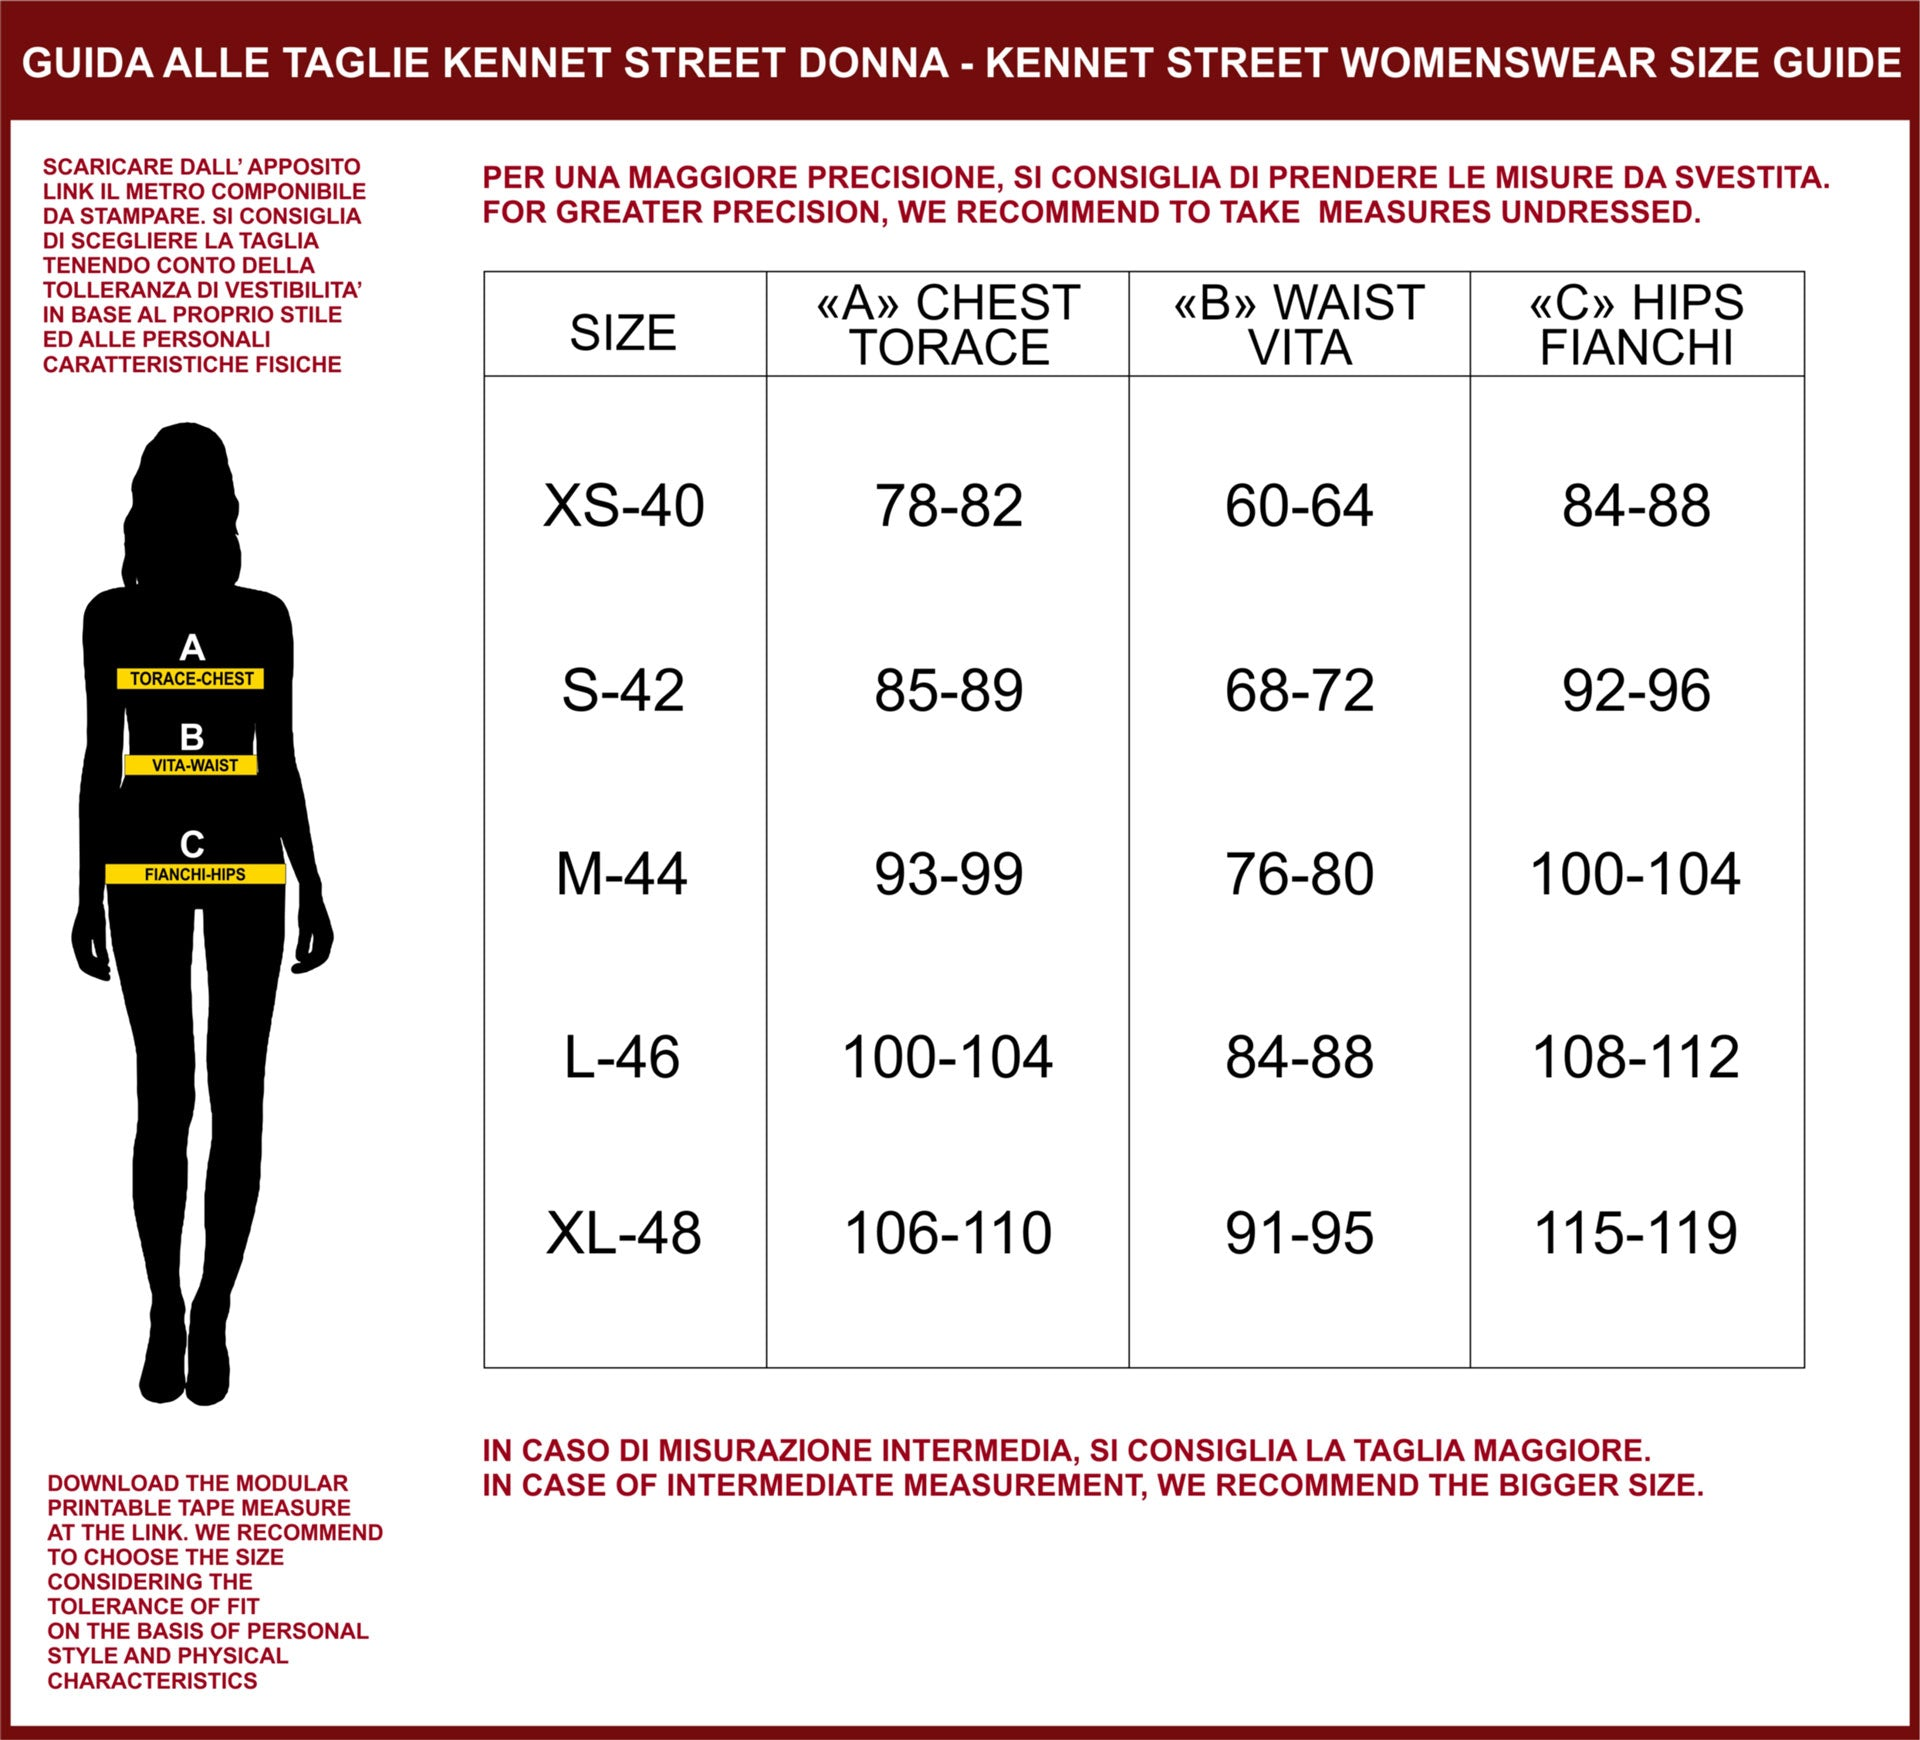 Kennet Street Women Size Guide